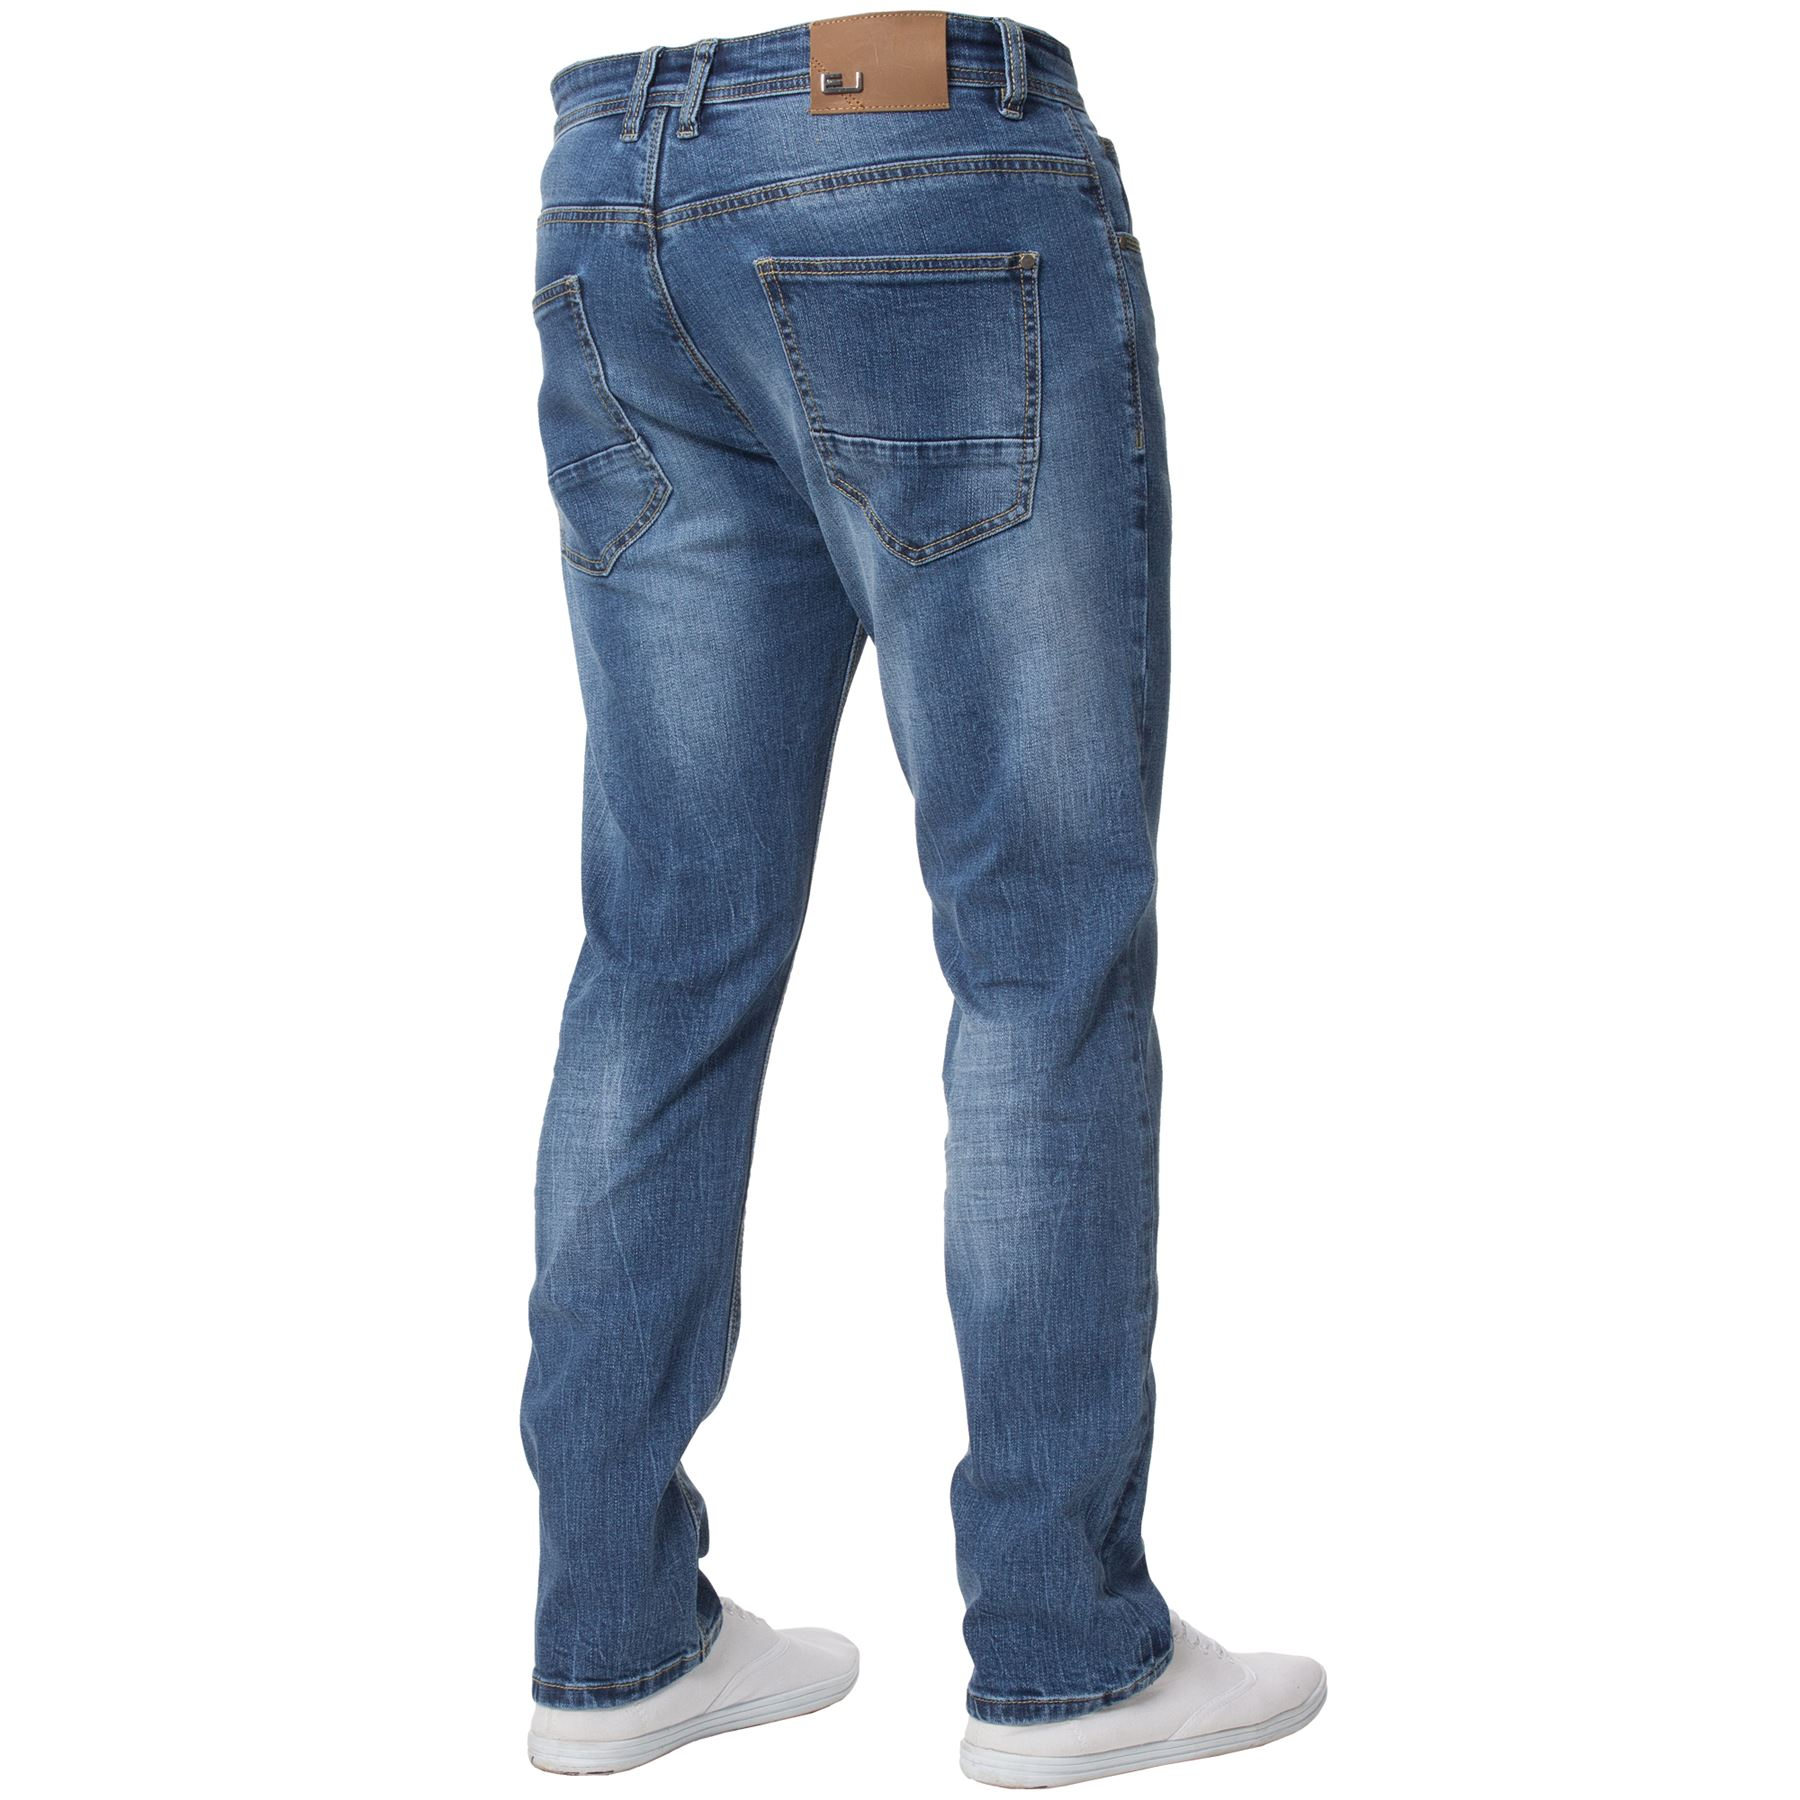 Eto-Designer-Mens-Tapered-Jeans-Slim-Fit-Stretch-Denim-Trouser-Pants-All-Waists thumbnail 4